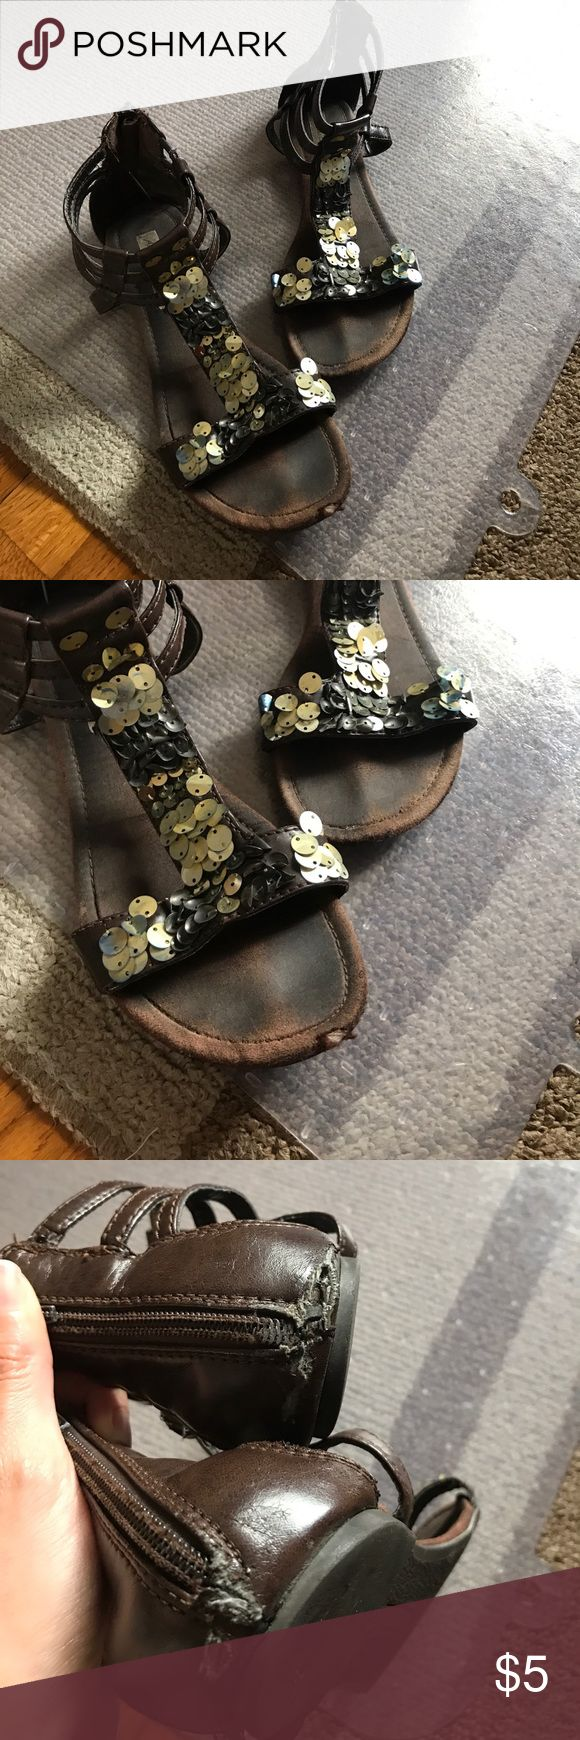 American Eagle Gold Sandals Size 7.5 American Eagle Gold Sandals Size 7.5 American Eagle Outfitters Shoes Sandals